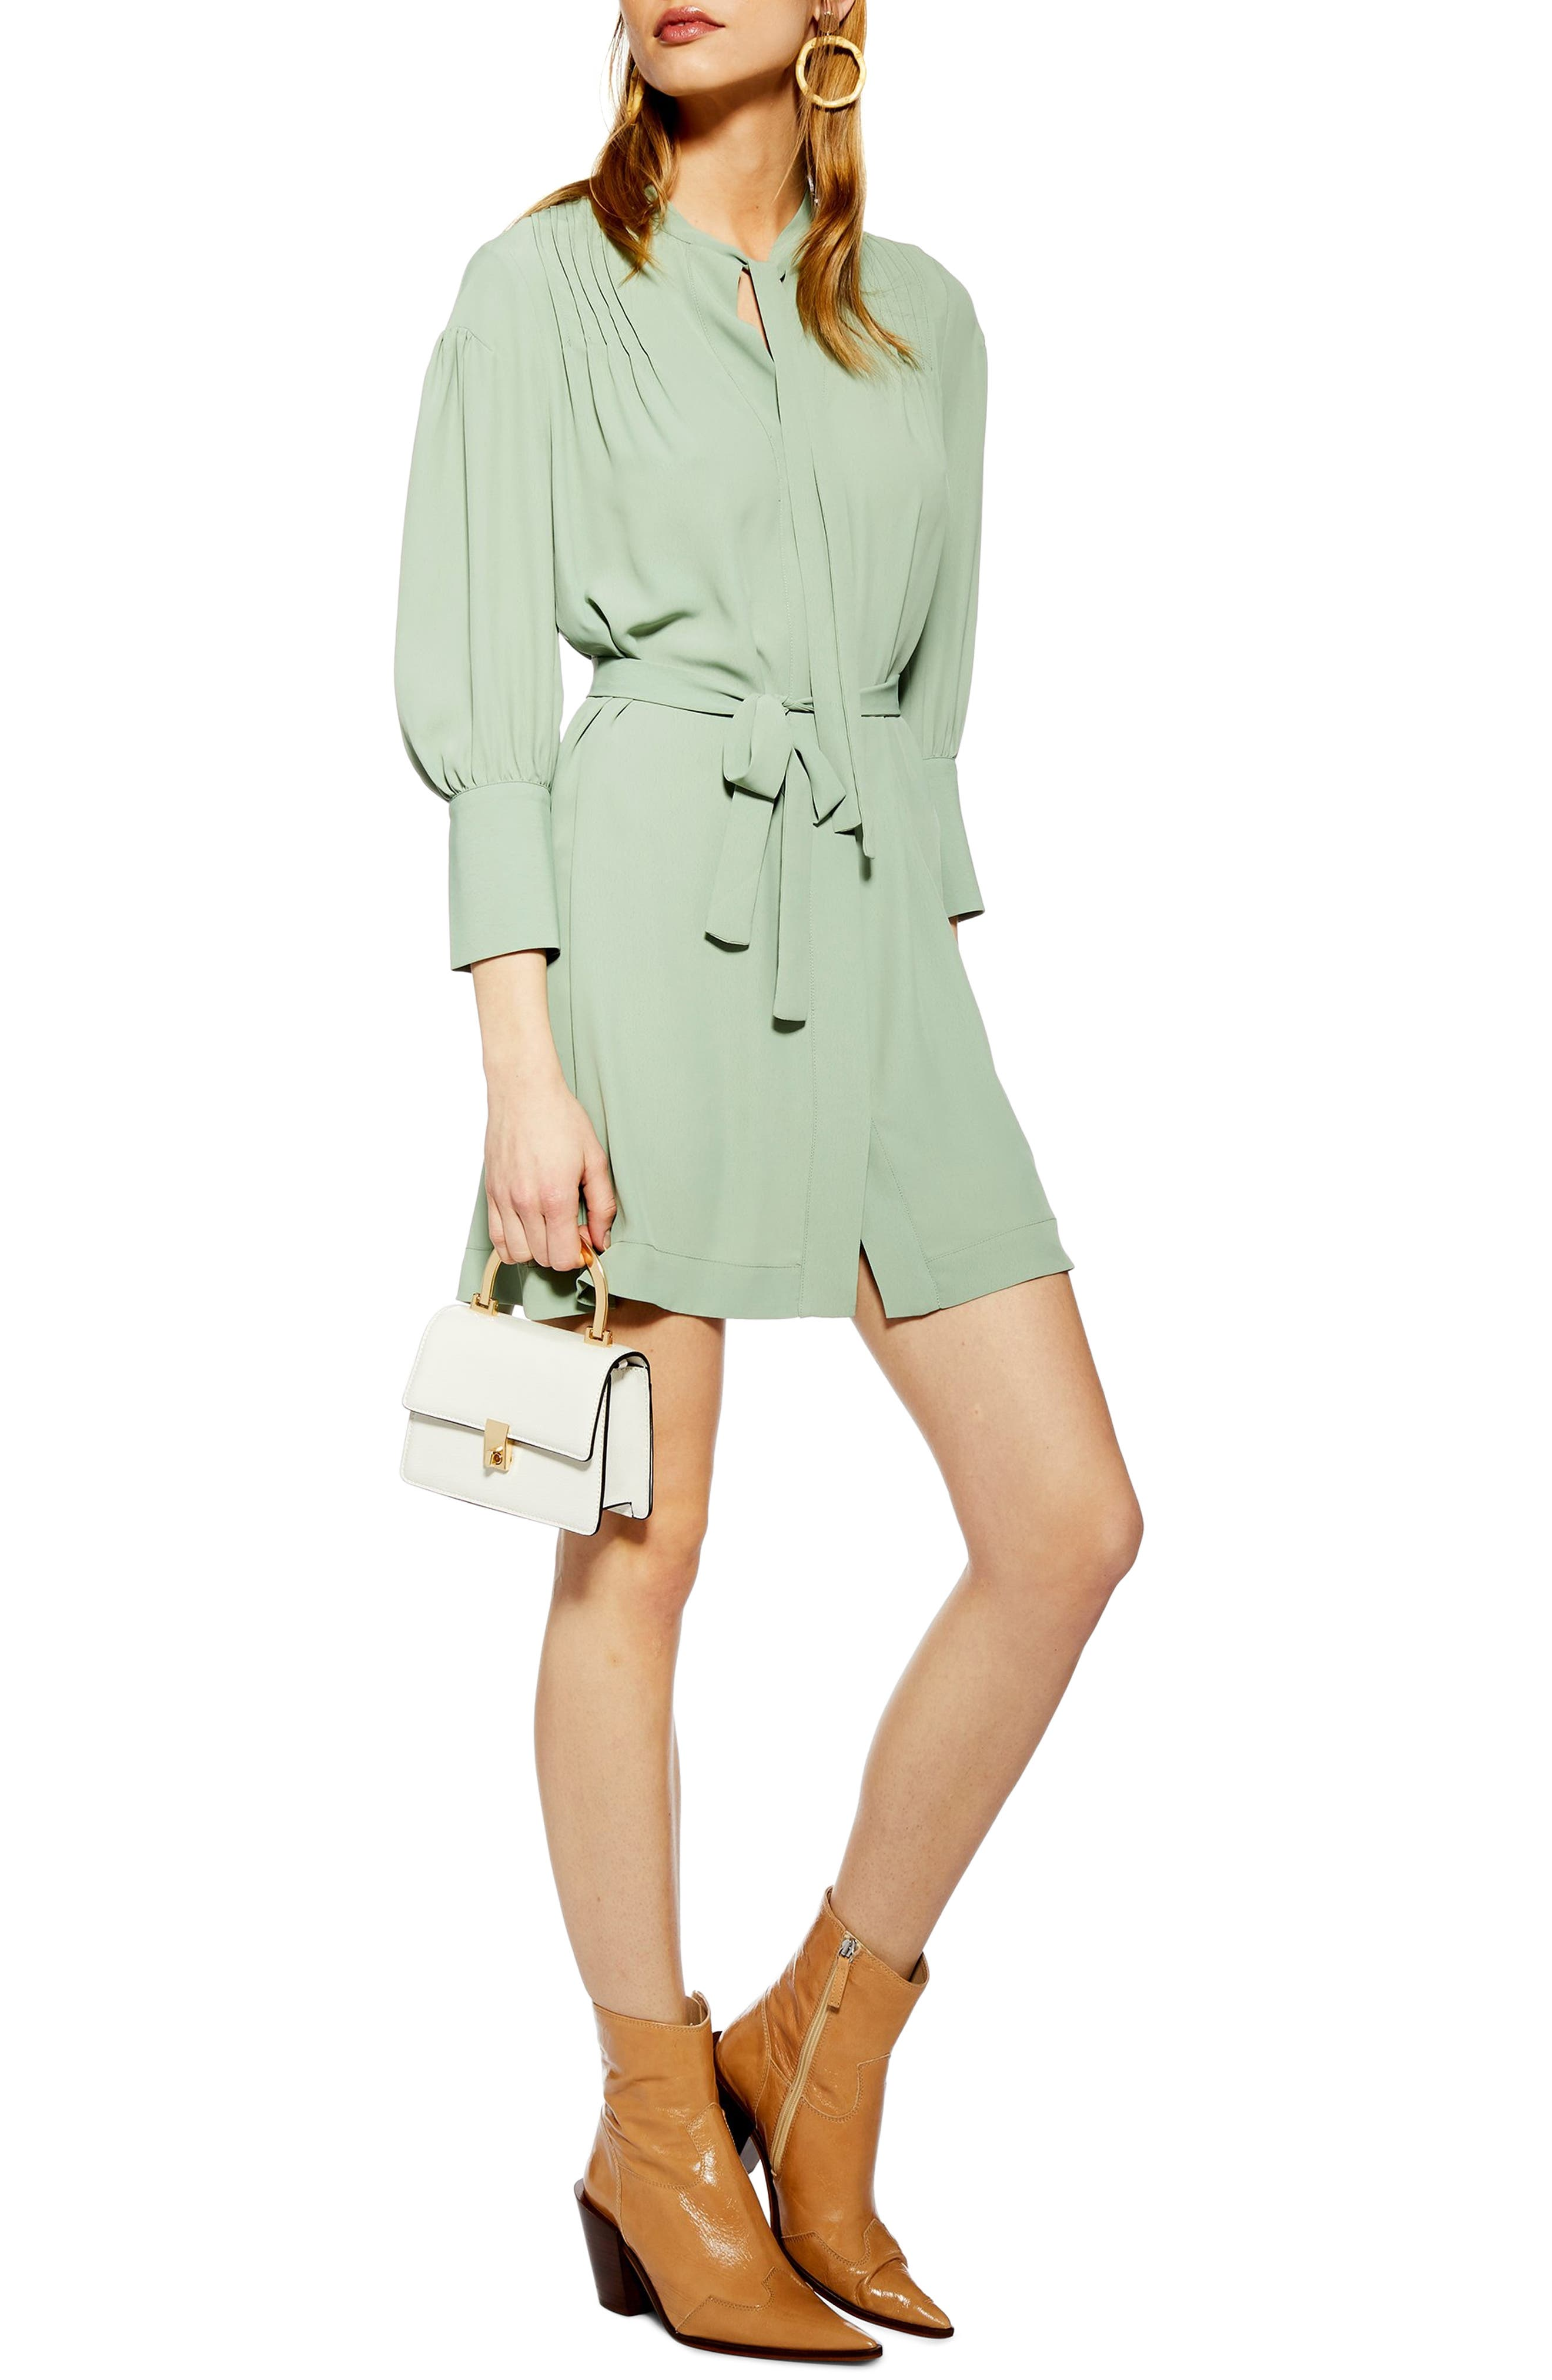 Topshop Pintuck Belted Minidress, US (fits like 0-2) - Green